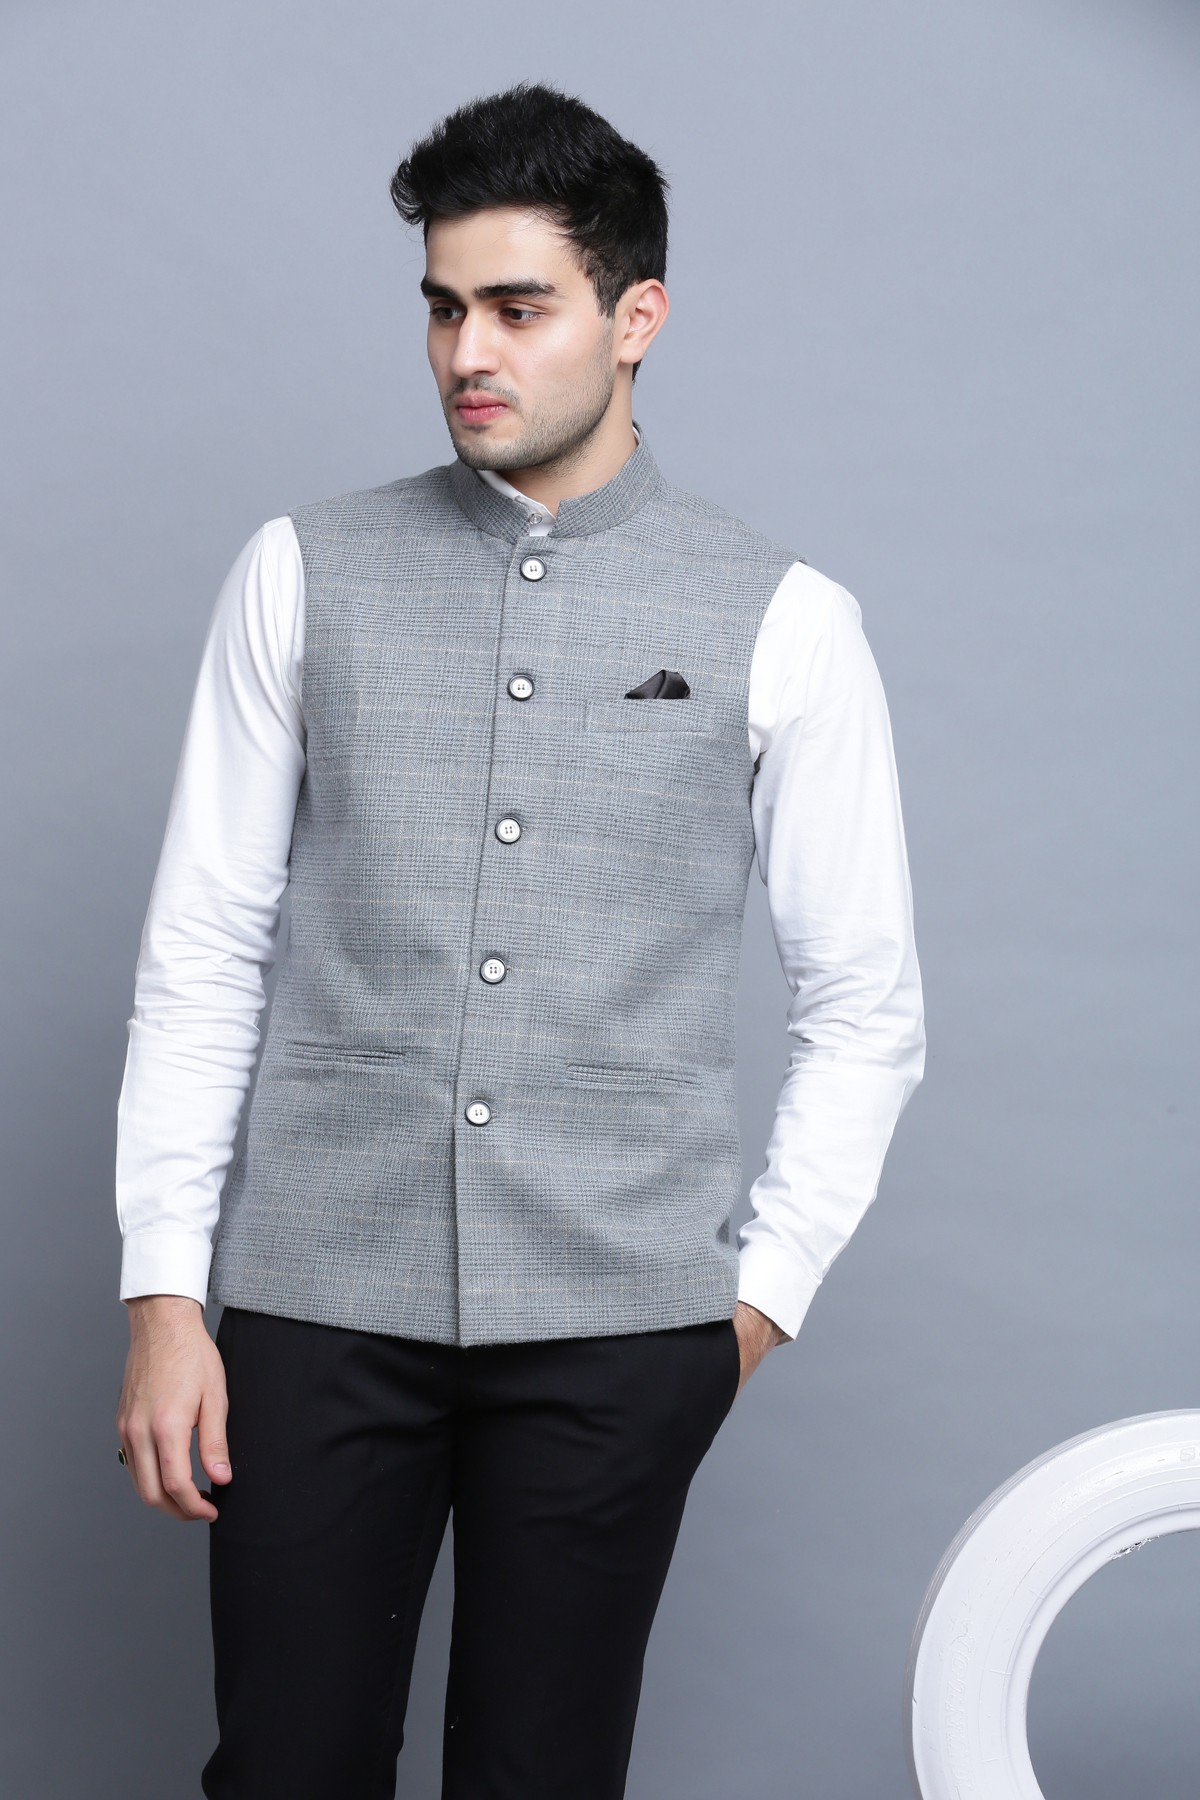 Grey formal check and mate nehru jacket